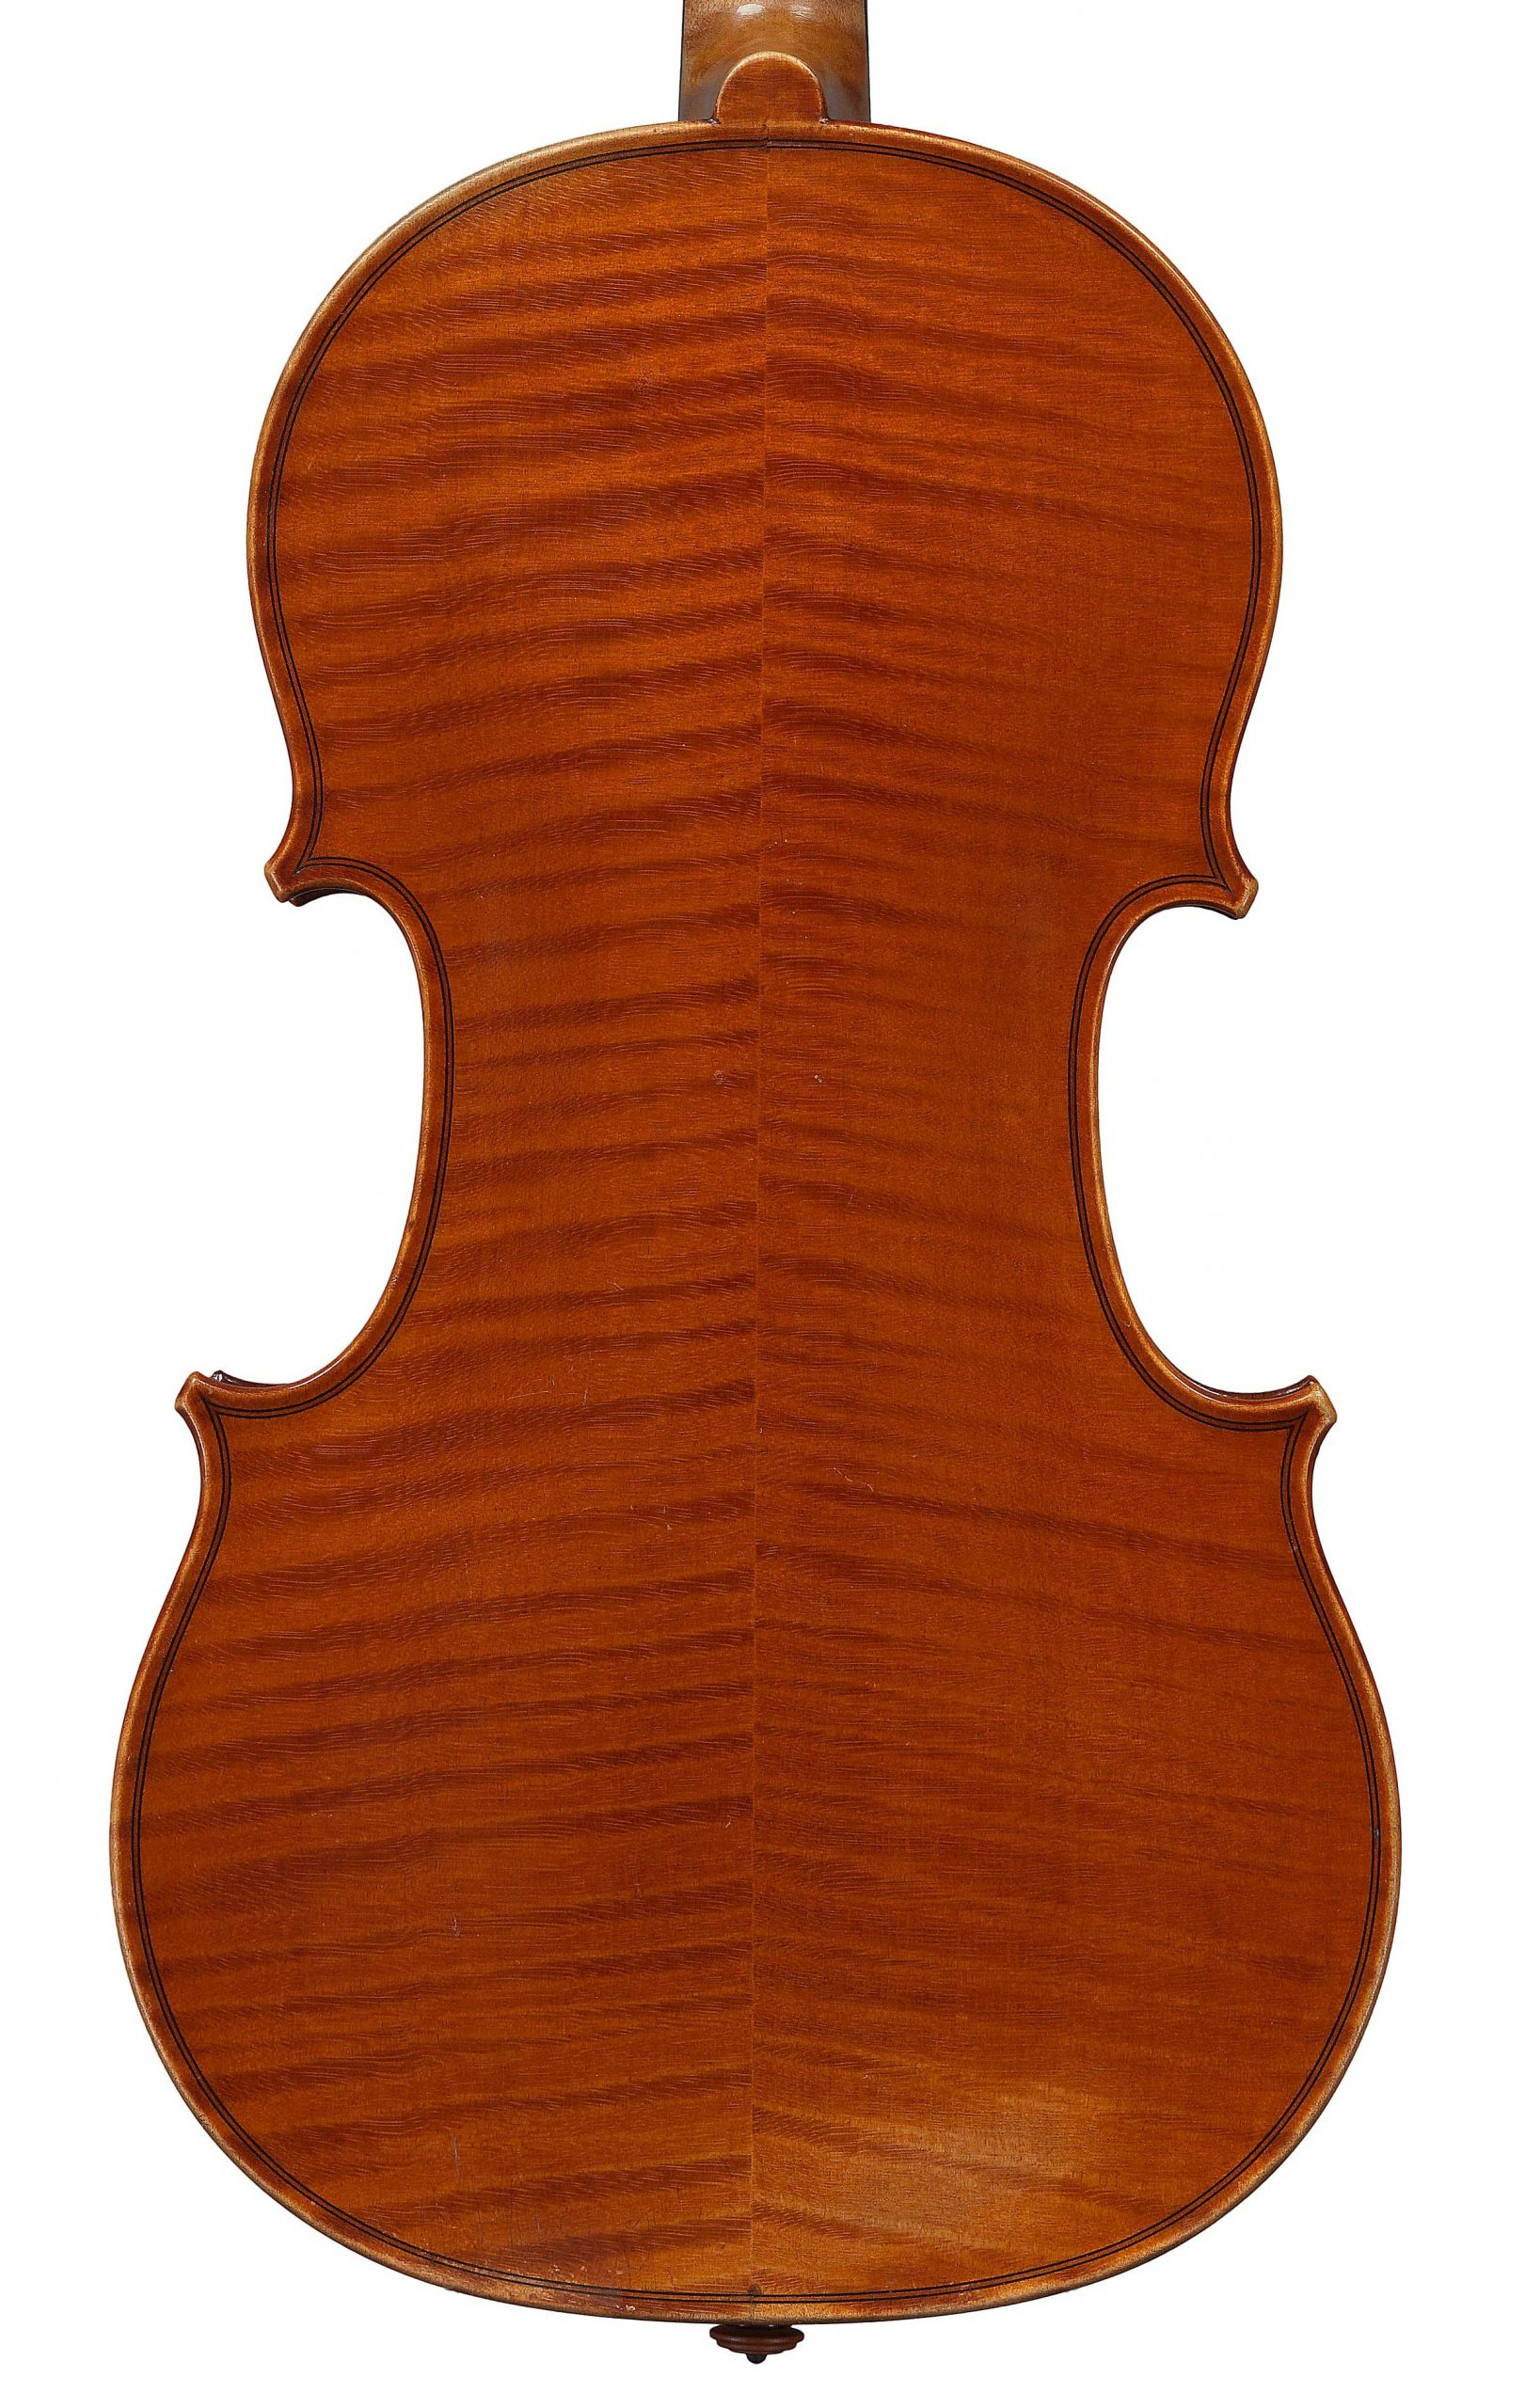 Back of a violin by JB Vuillaume, King of Portugal, dated 1873, exhibited by Ingles & Hayday at Sotheby's in 2012